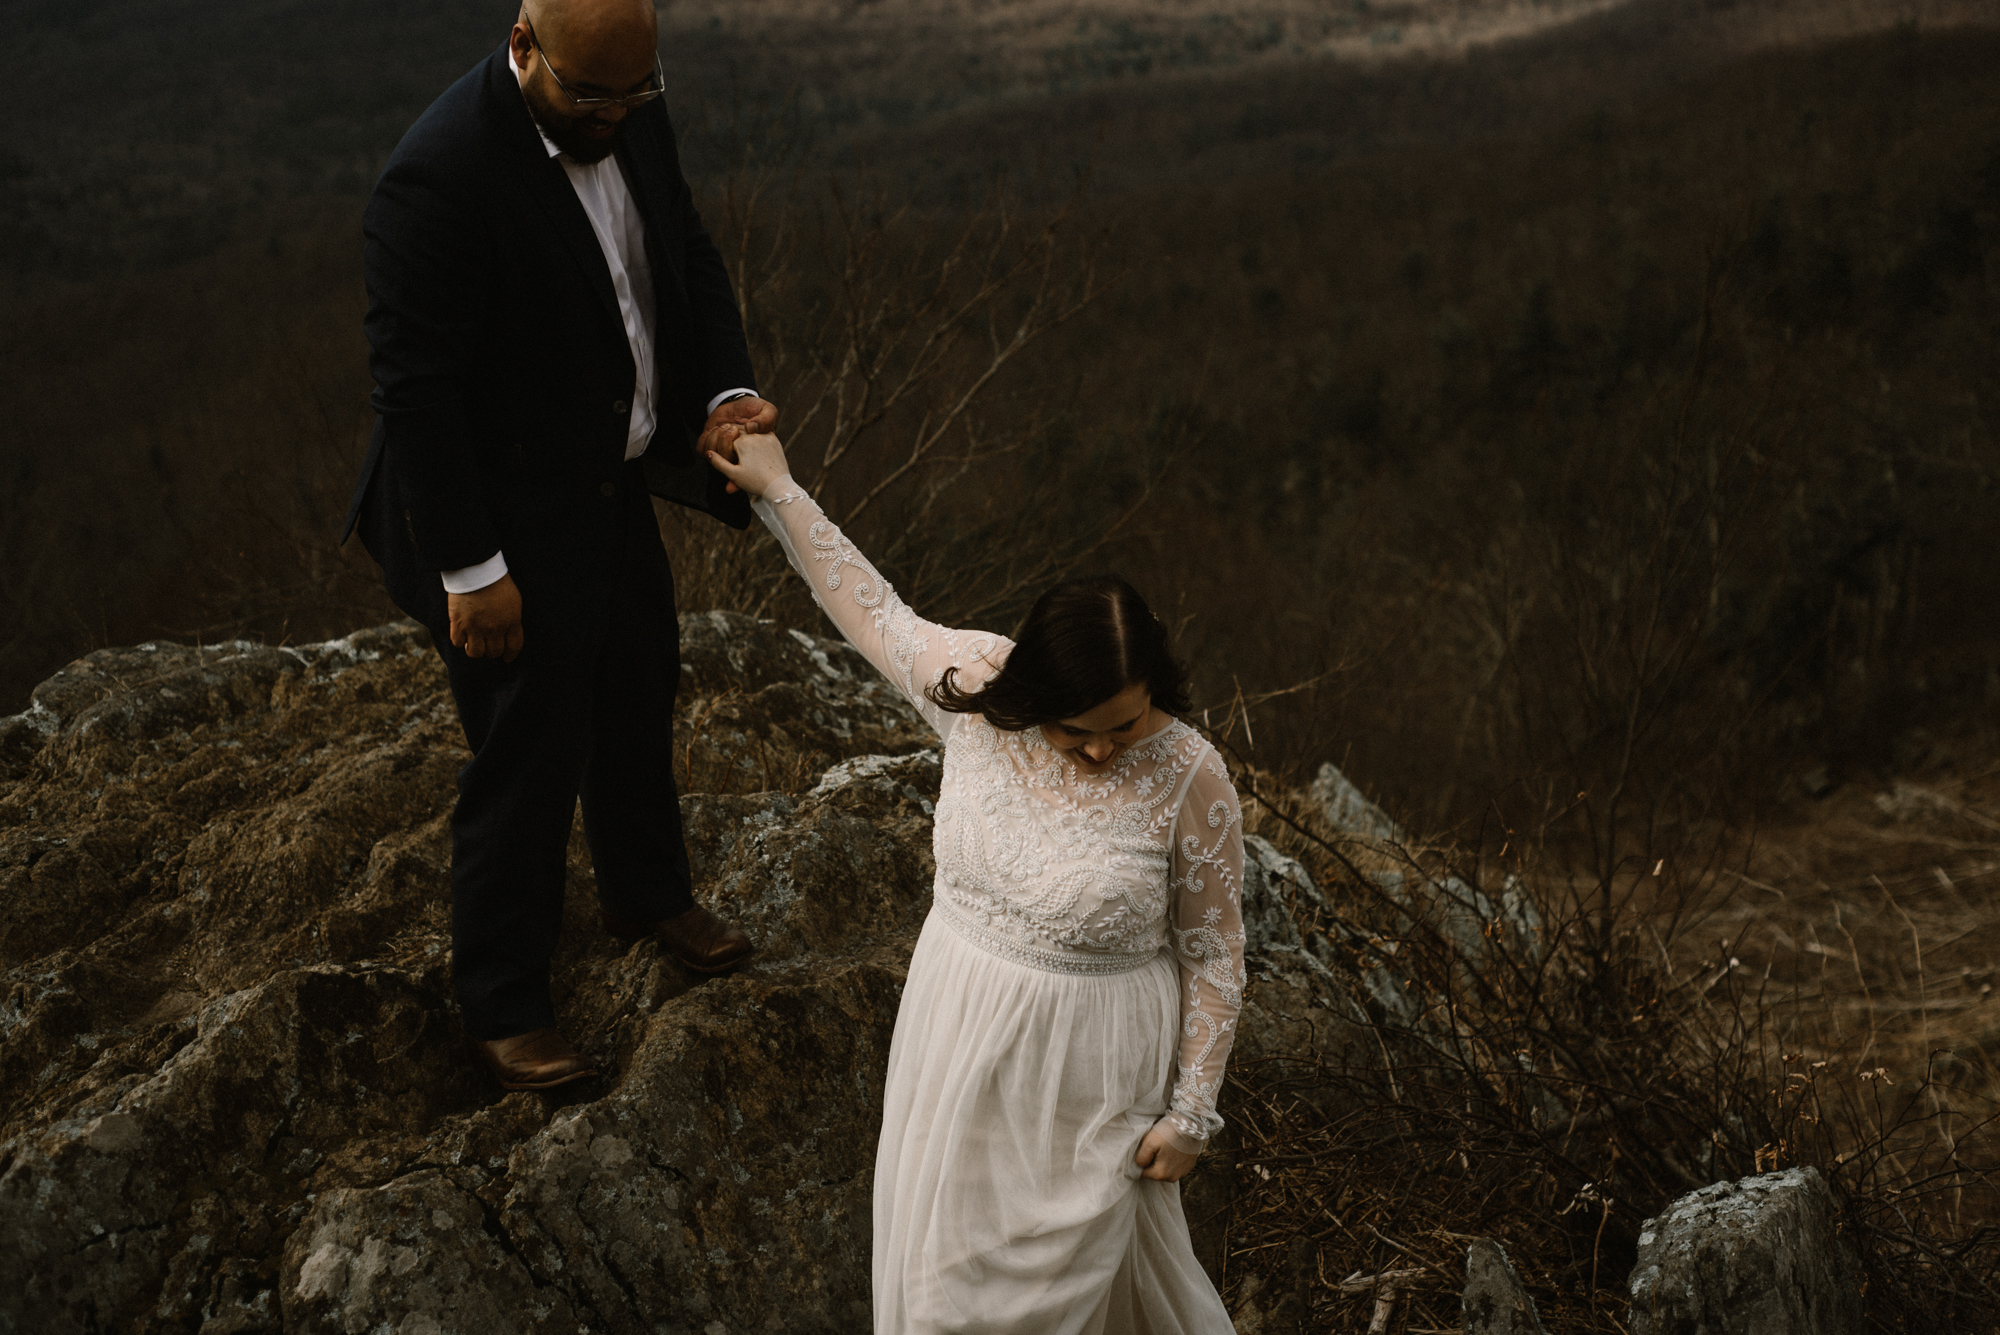 Emma and Jeddah - Intimate Luray Wedding - Shenandoah National Park Wedding - Adventure Elopement in Virginia - Shenandoah National Park Elopement_60.jpg